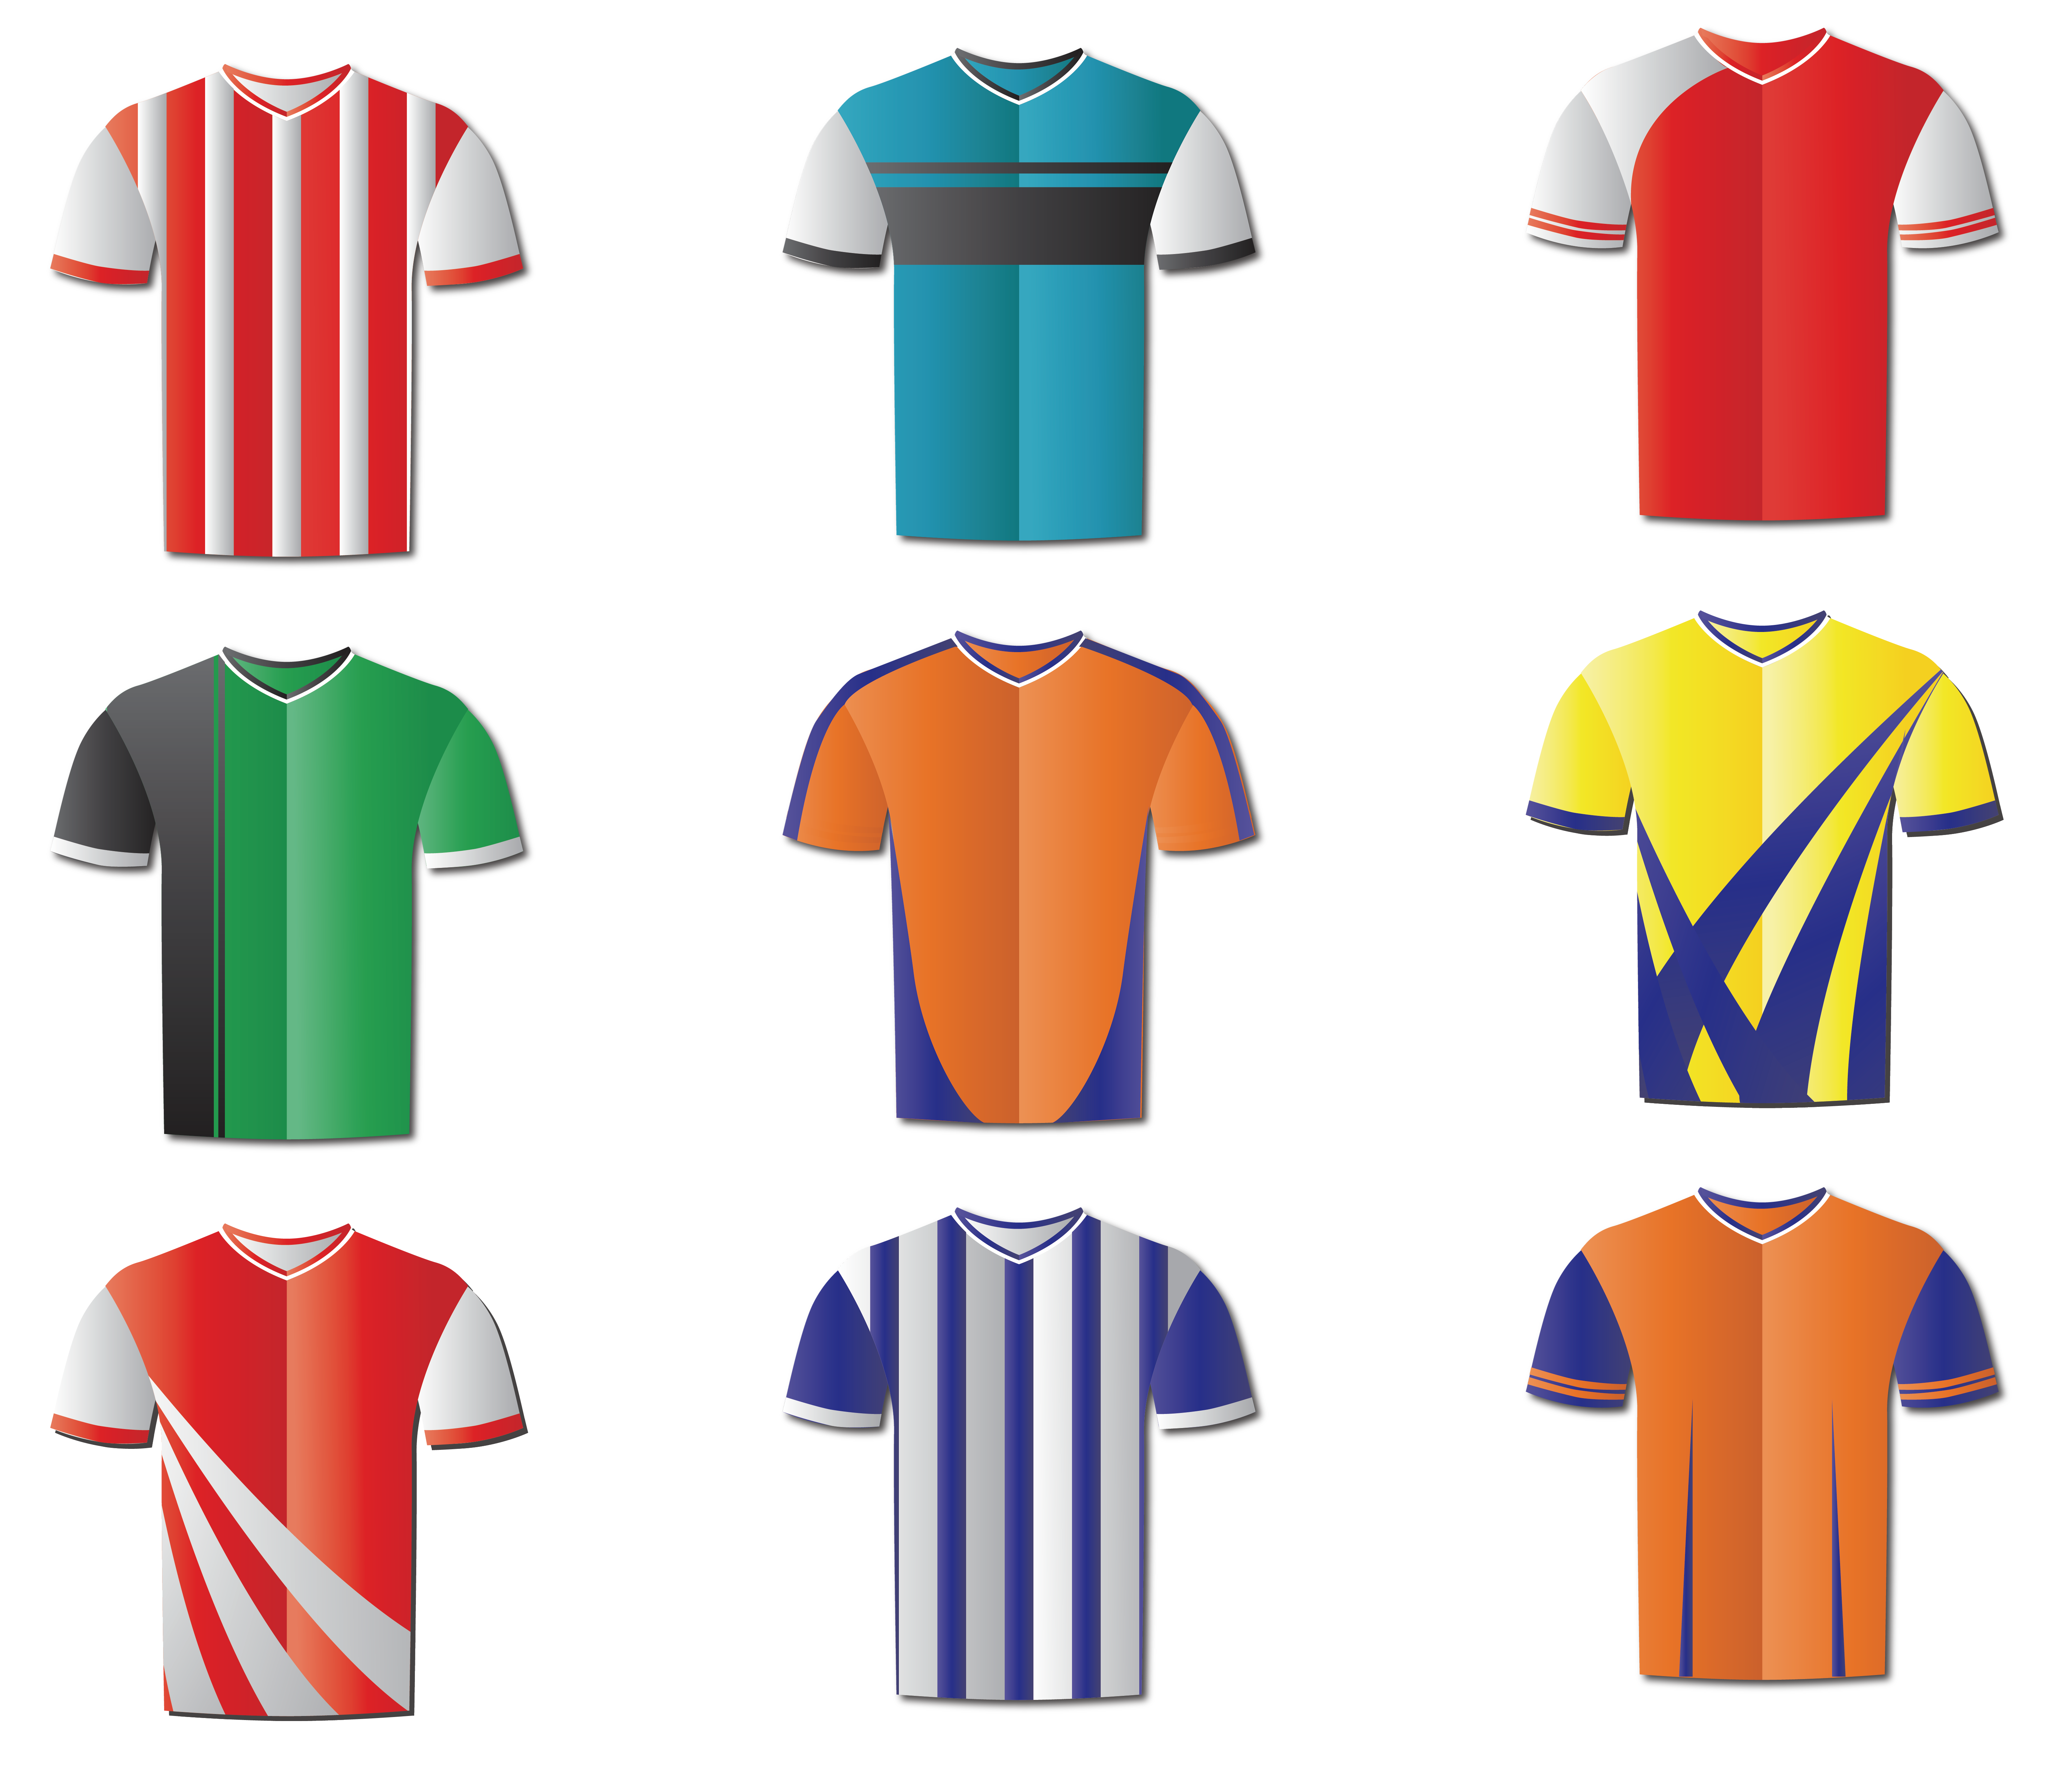 Football clipart for t shirts picture free library T-shirt Jersey Football Sportswear - Different styles of clothing ... picture free library